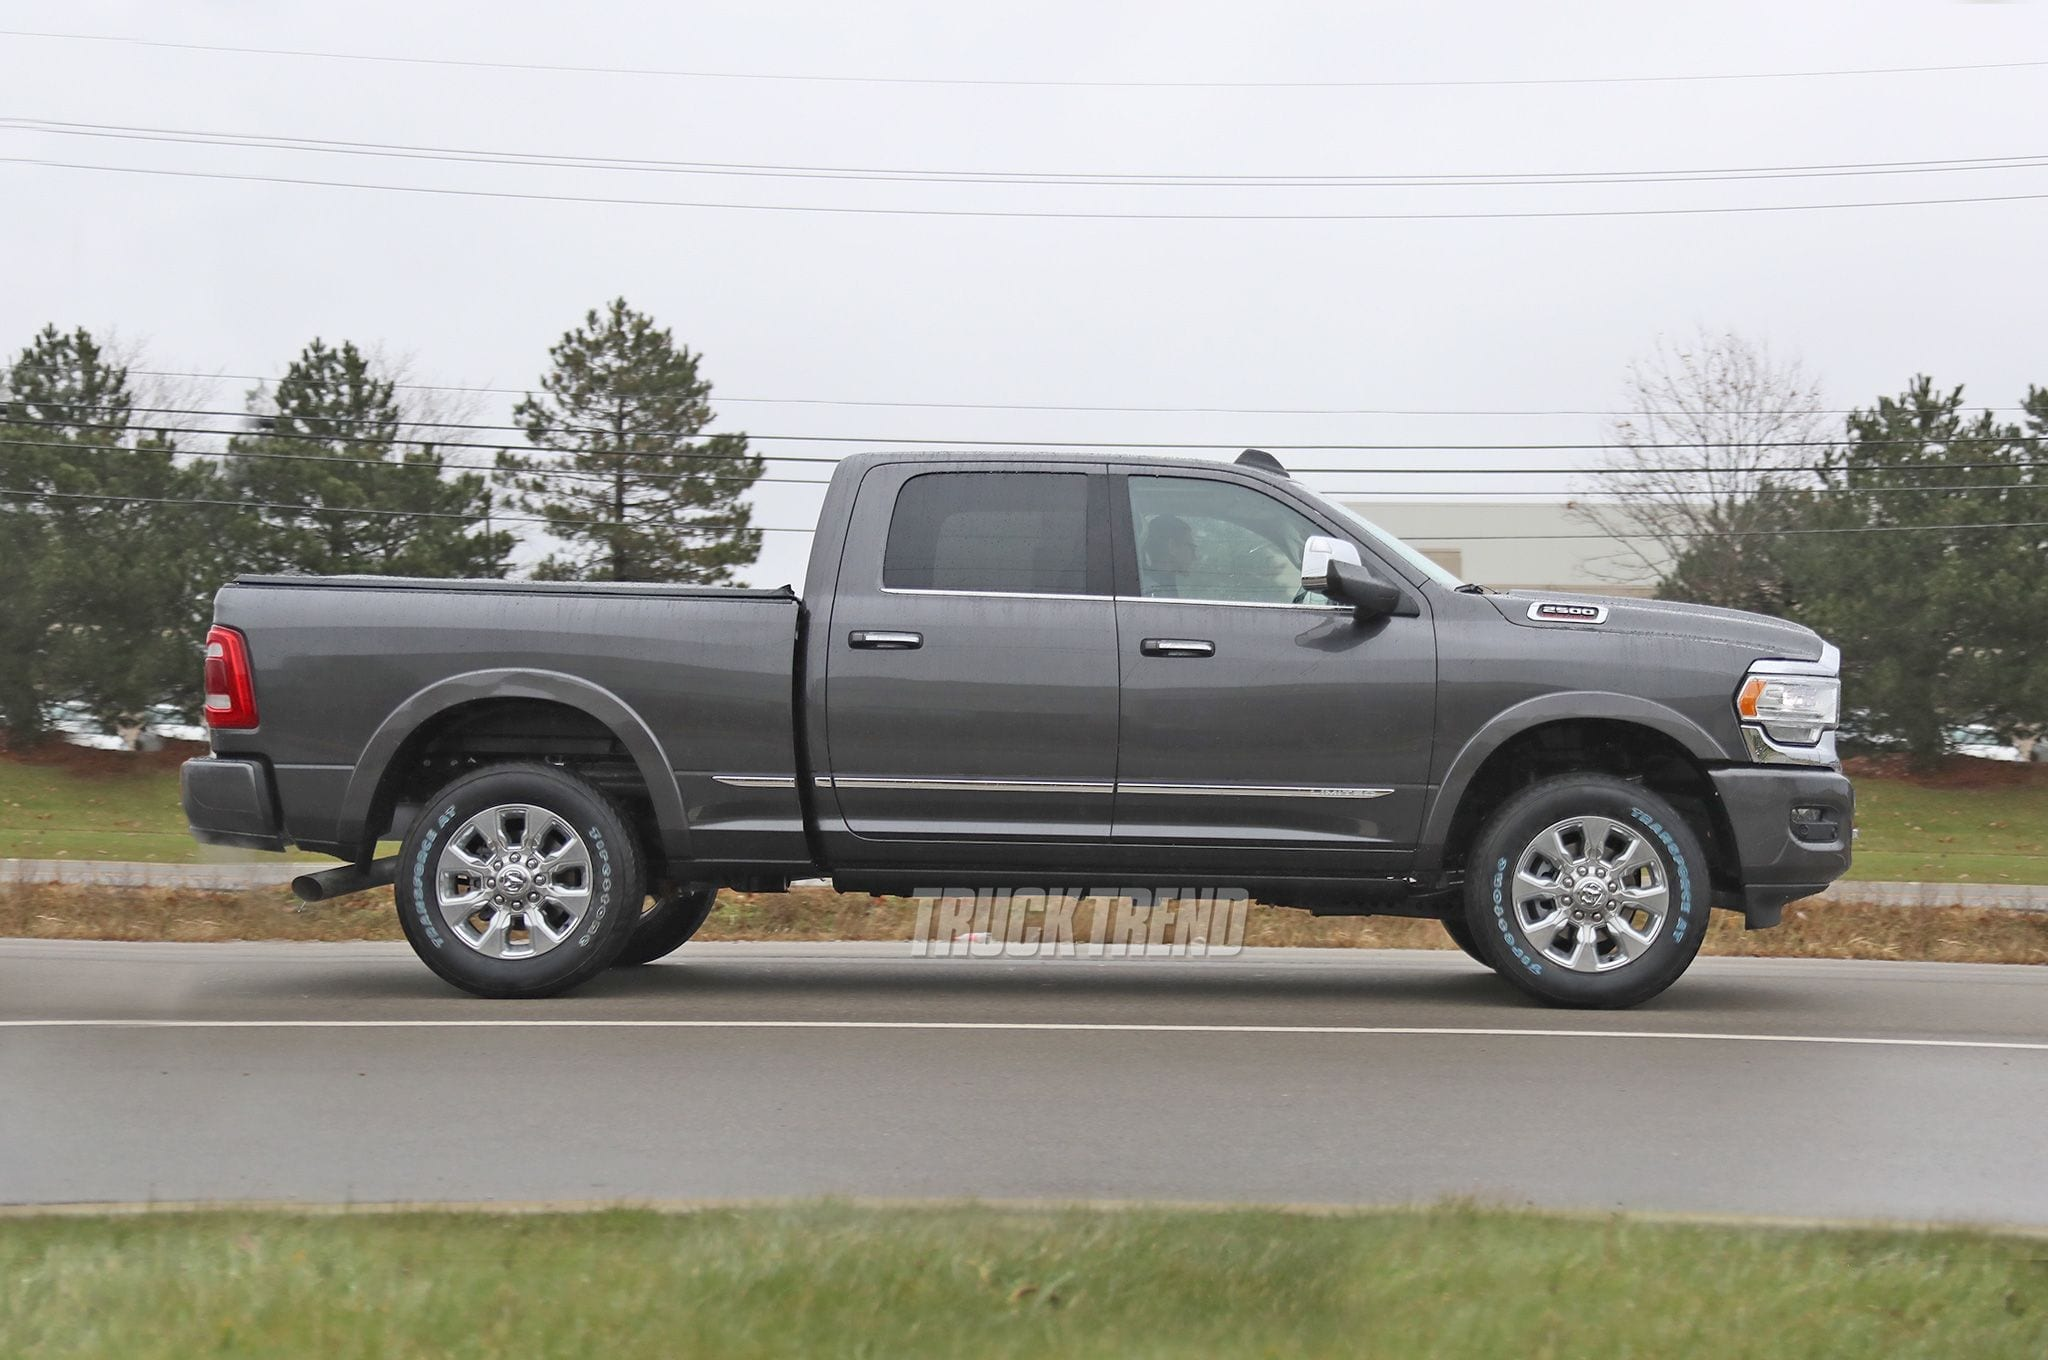 2020 Ram Heavy Duty Trucks What To Expect Pickup Truck